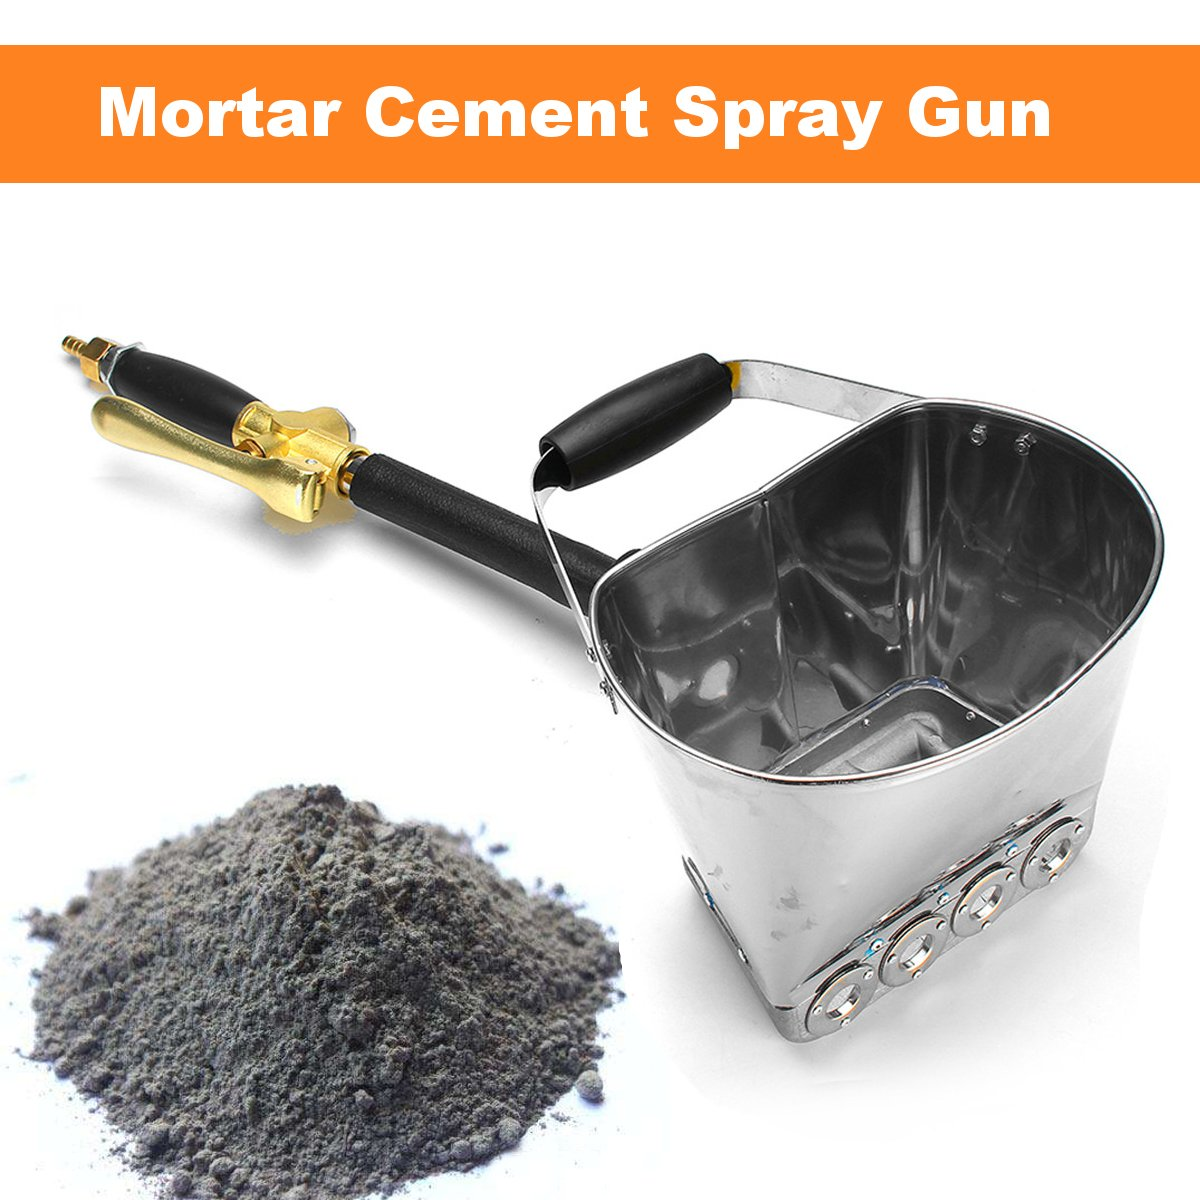 New Arrival 2019 Mortar Cement Spray Guns With Bucket Wall Sprayer Plaster Sprayer Cement Spray Stucco Plaster Sprayer ToolsNew Arrival 2019 Mortar Cement Spray Guns With Bucket Wall Sprayer Plaster Sprayer Cement Spray Stucco Plaster Sprayer Tools